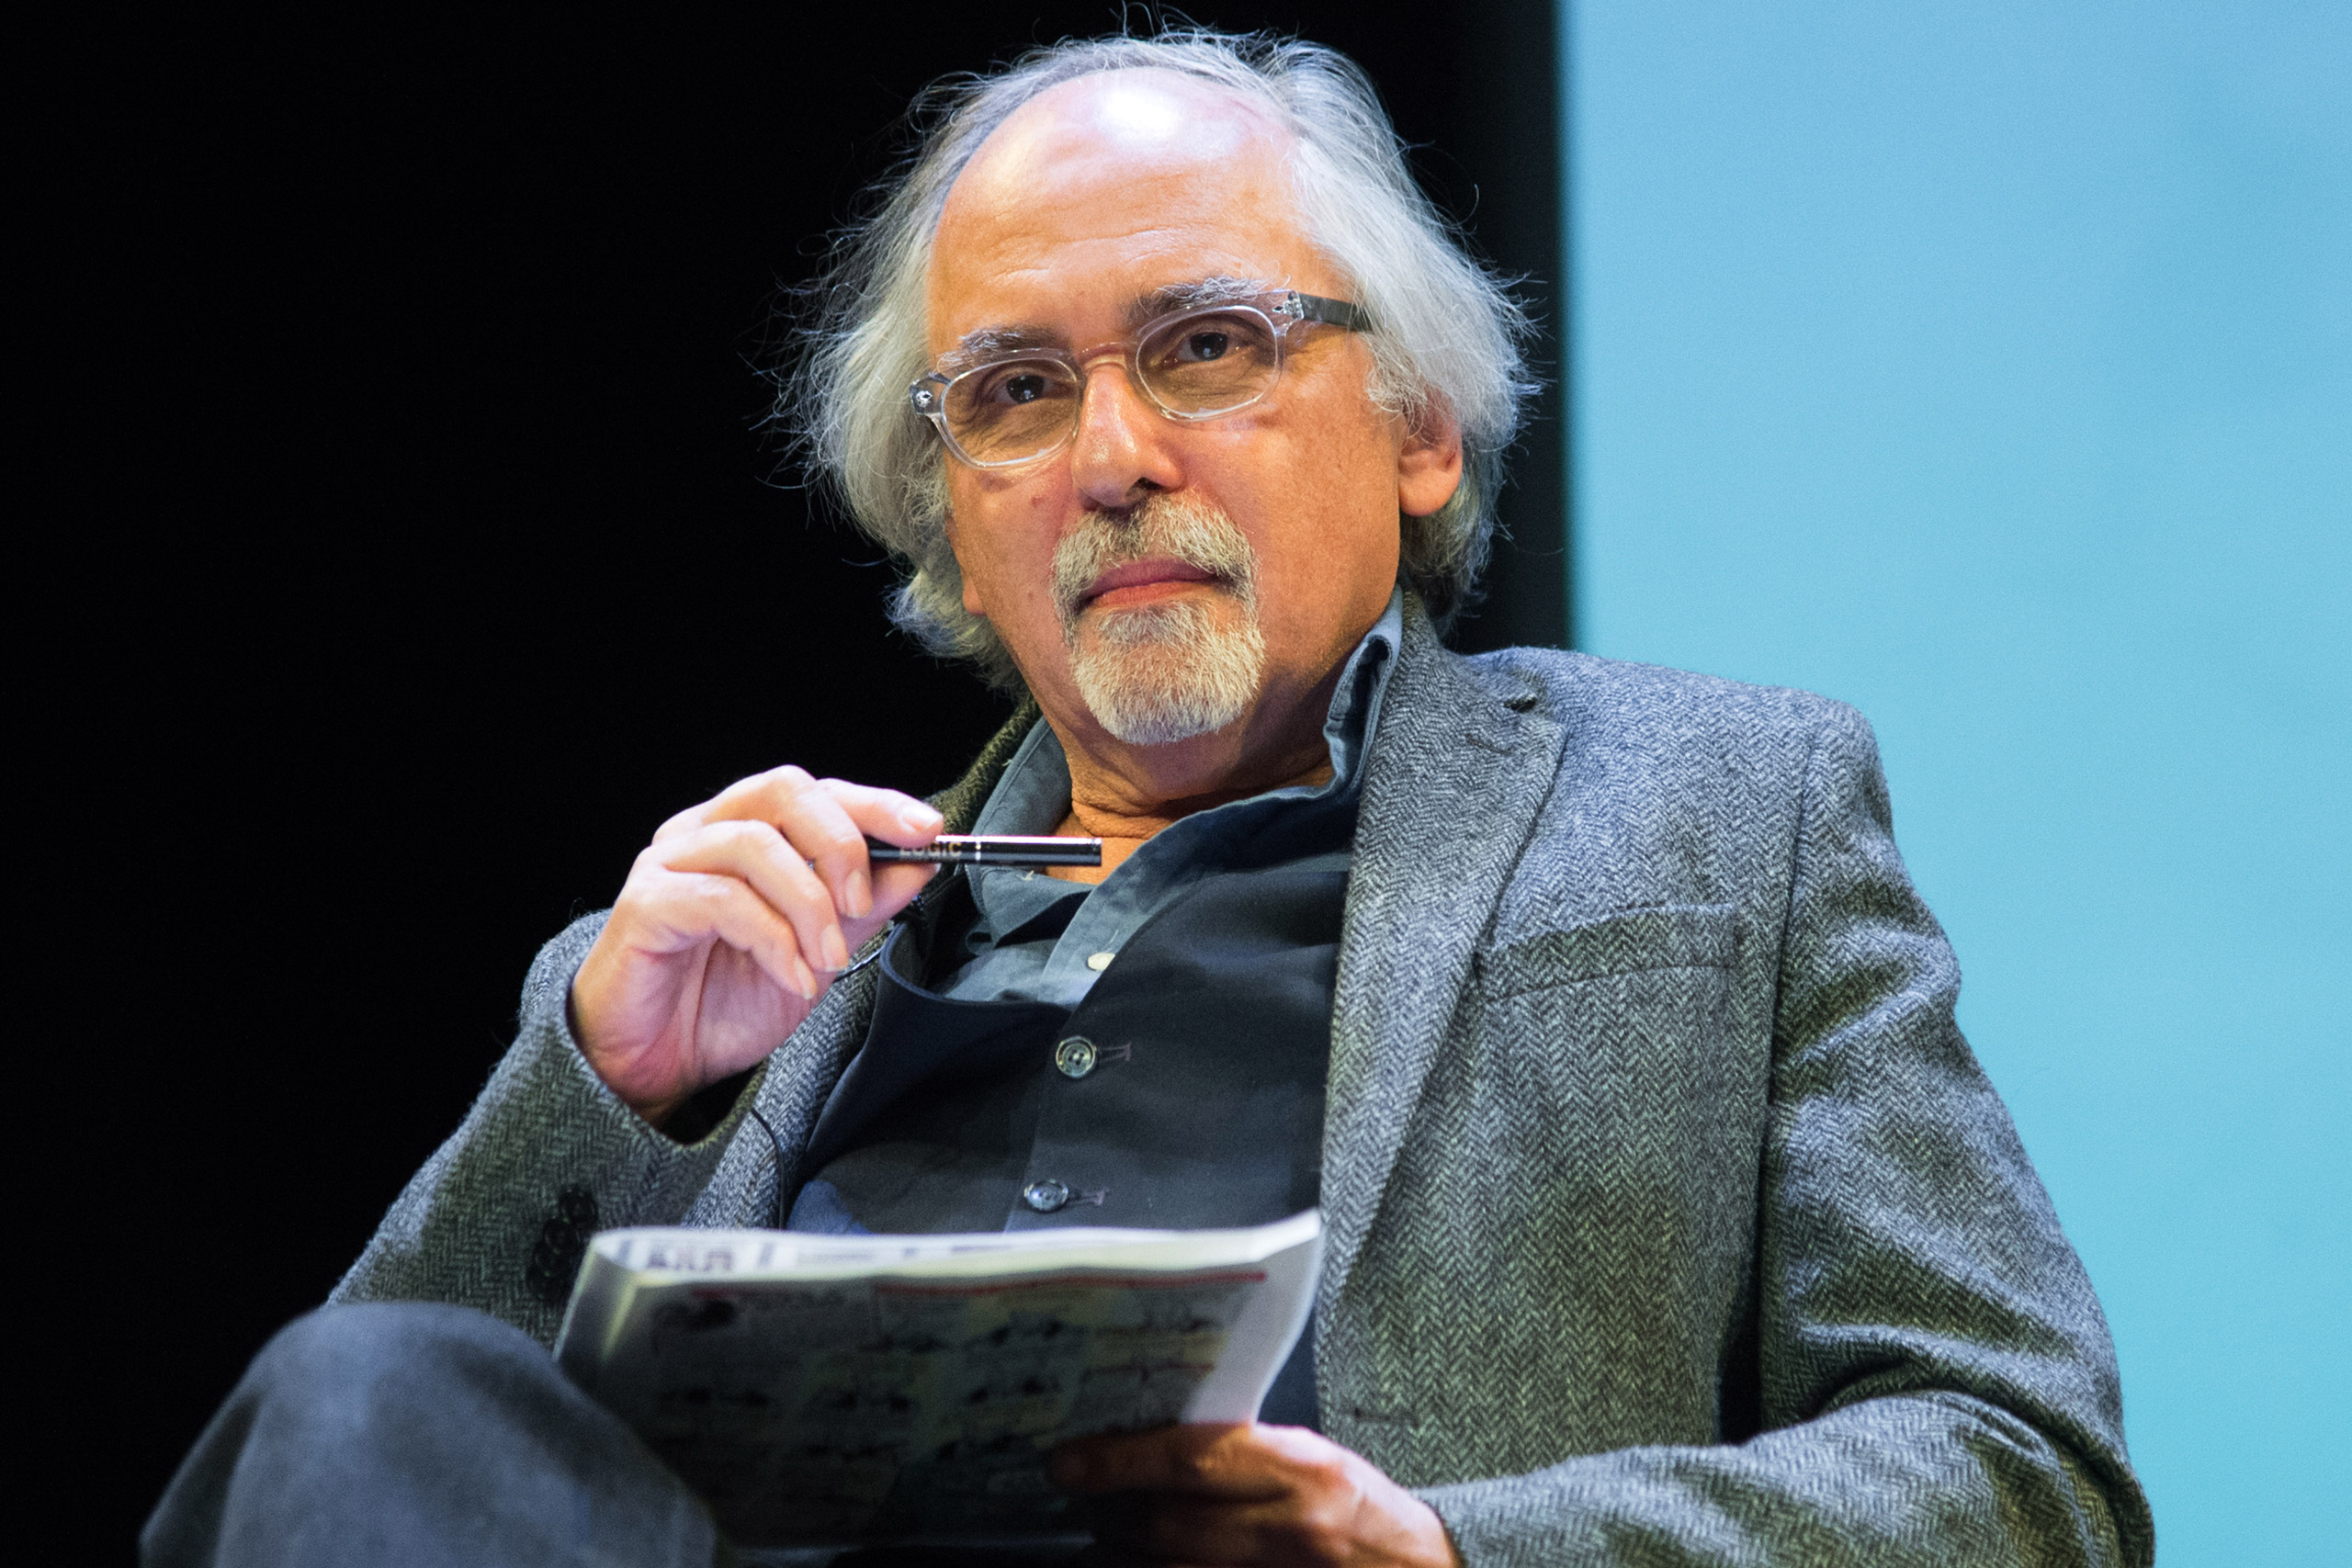 Cartoonist Art Spiegelman attends the French Institute Alliance Francaise's  After Charlie: What's Next for Art, Satire and Censorship  at Florence Gould Hall on Feb. 19, 2015 in New York City.